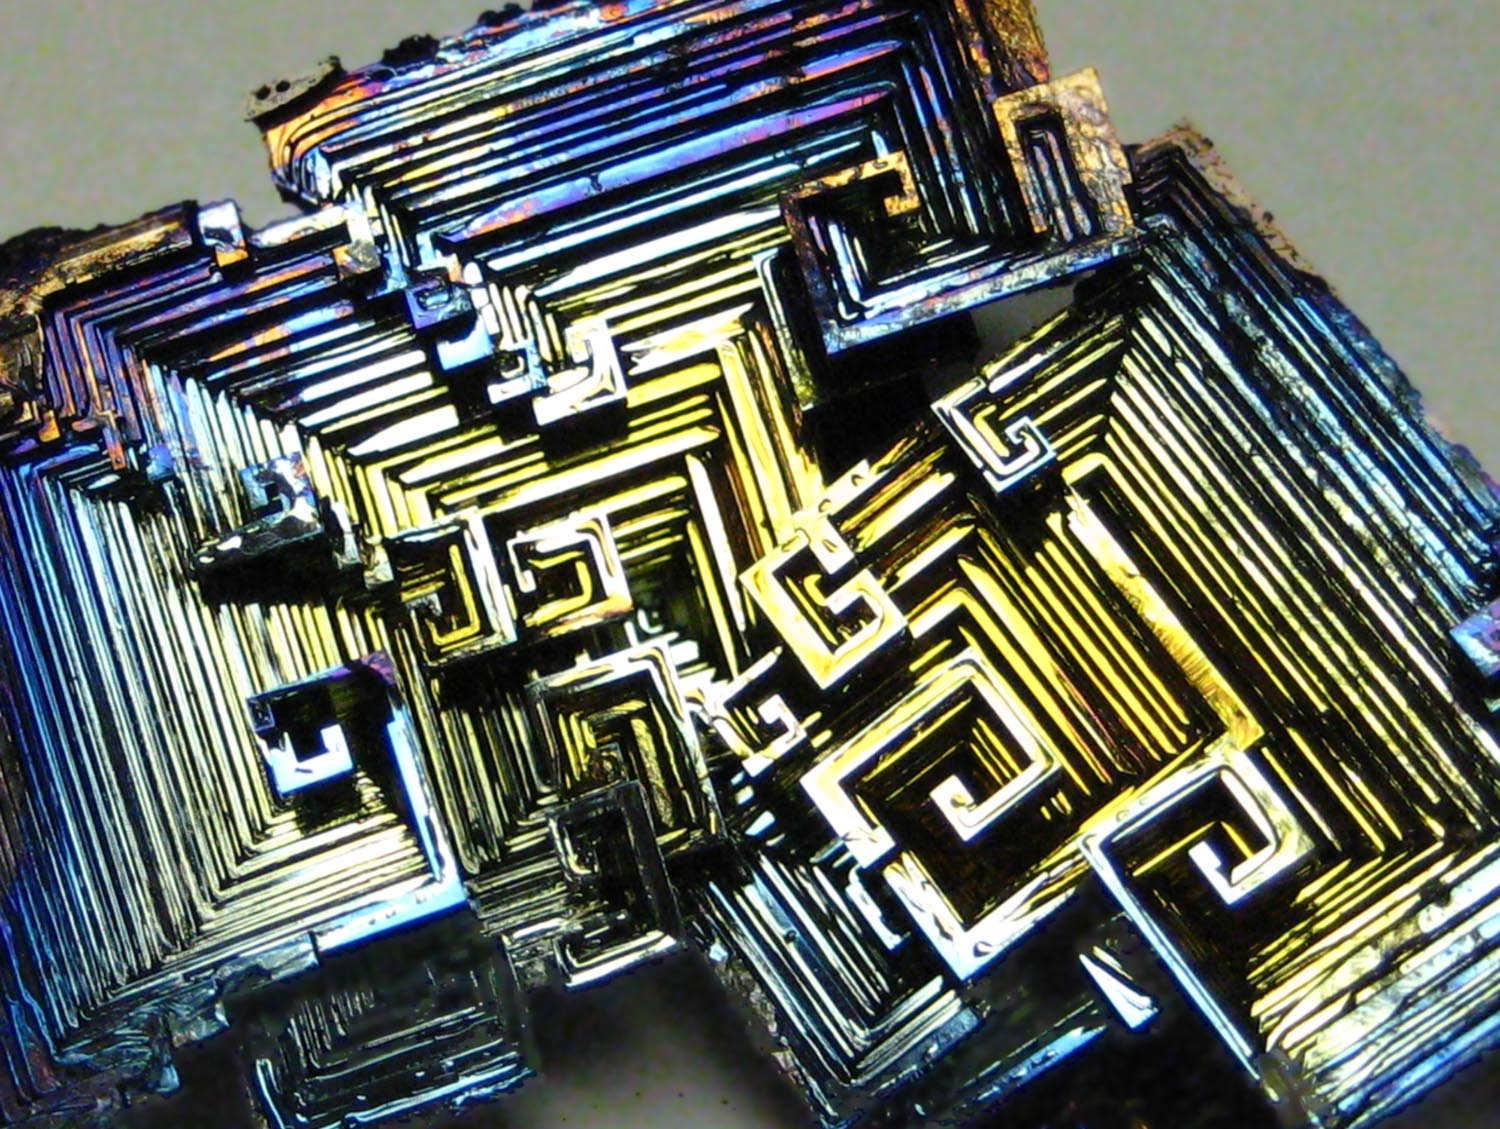 You can melt raw bismuth in a pot on your stove and it resolidifies into beautiful, rainbow colored, fractal shapes